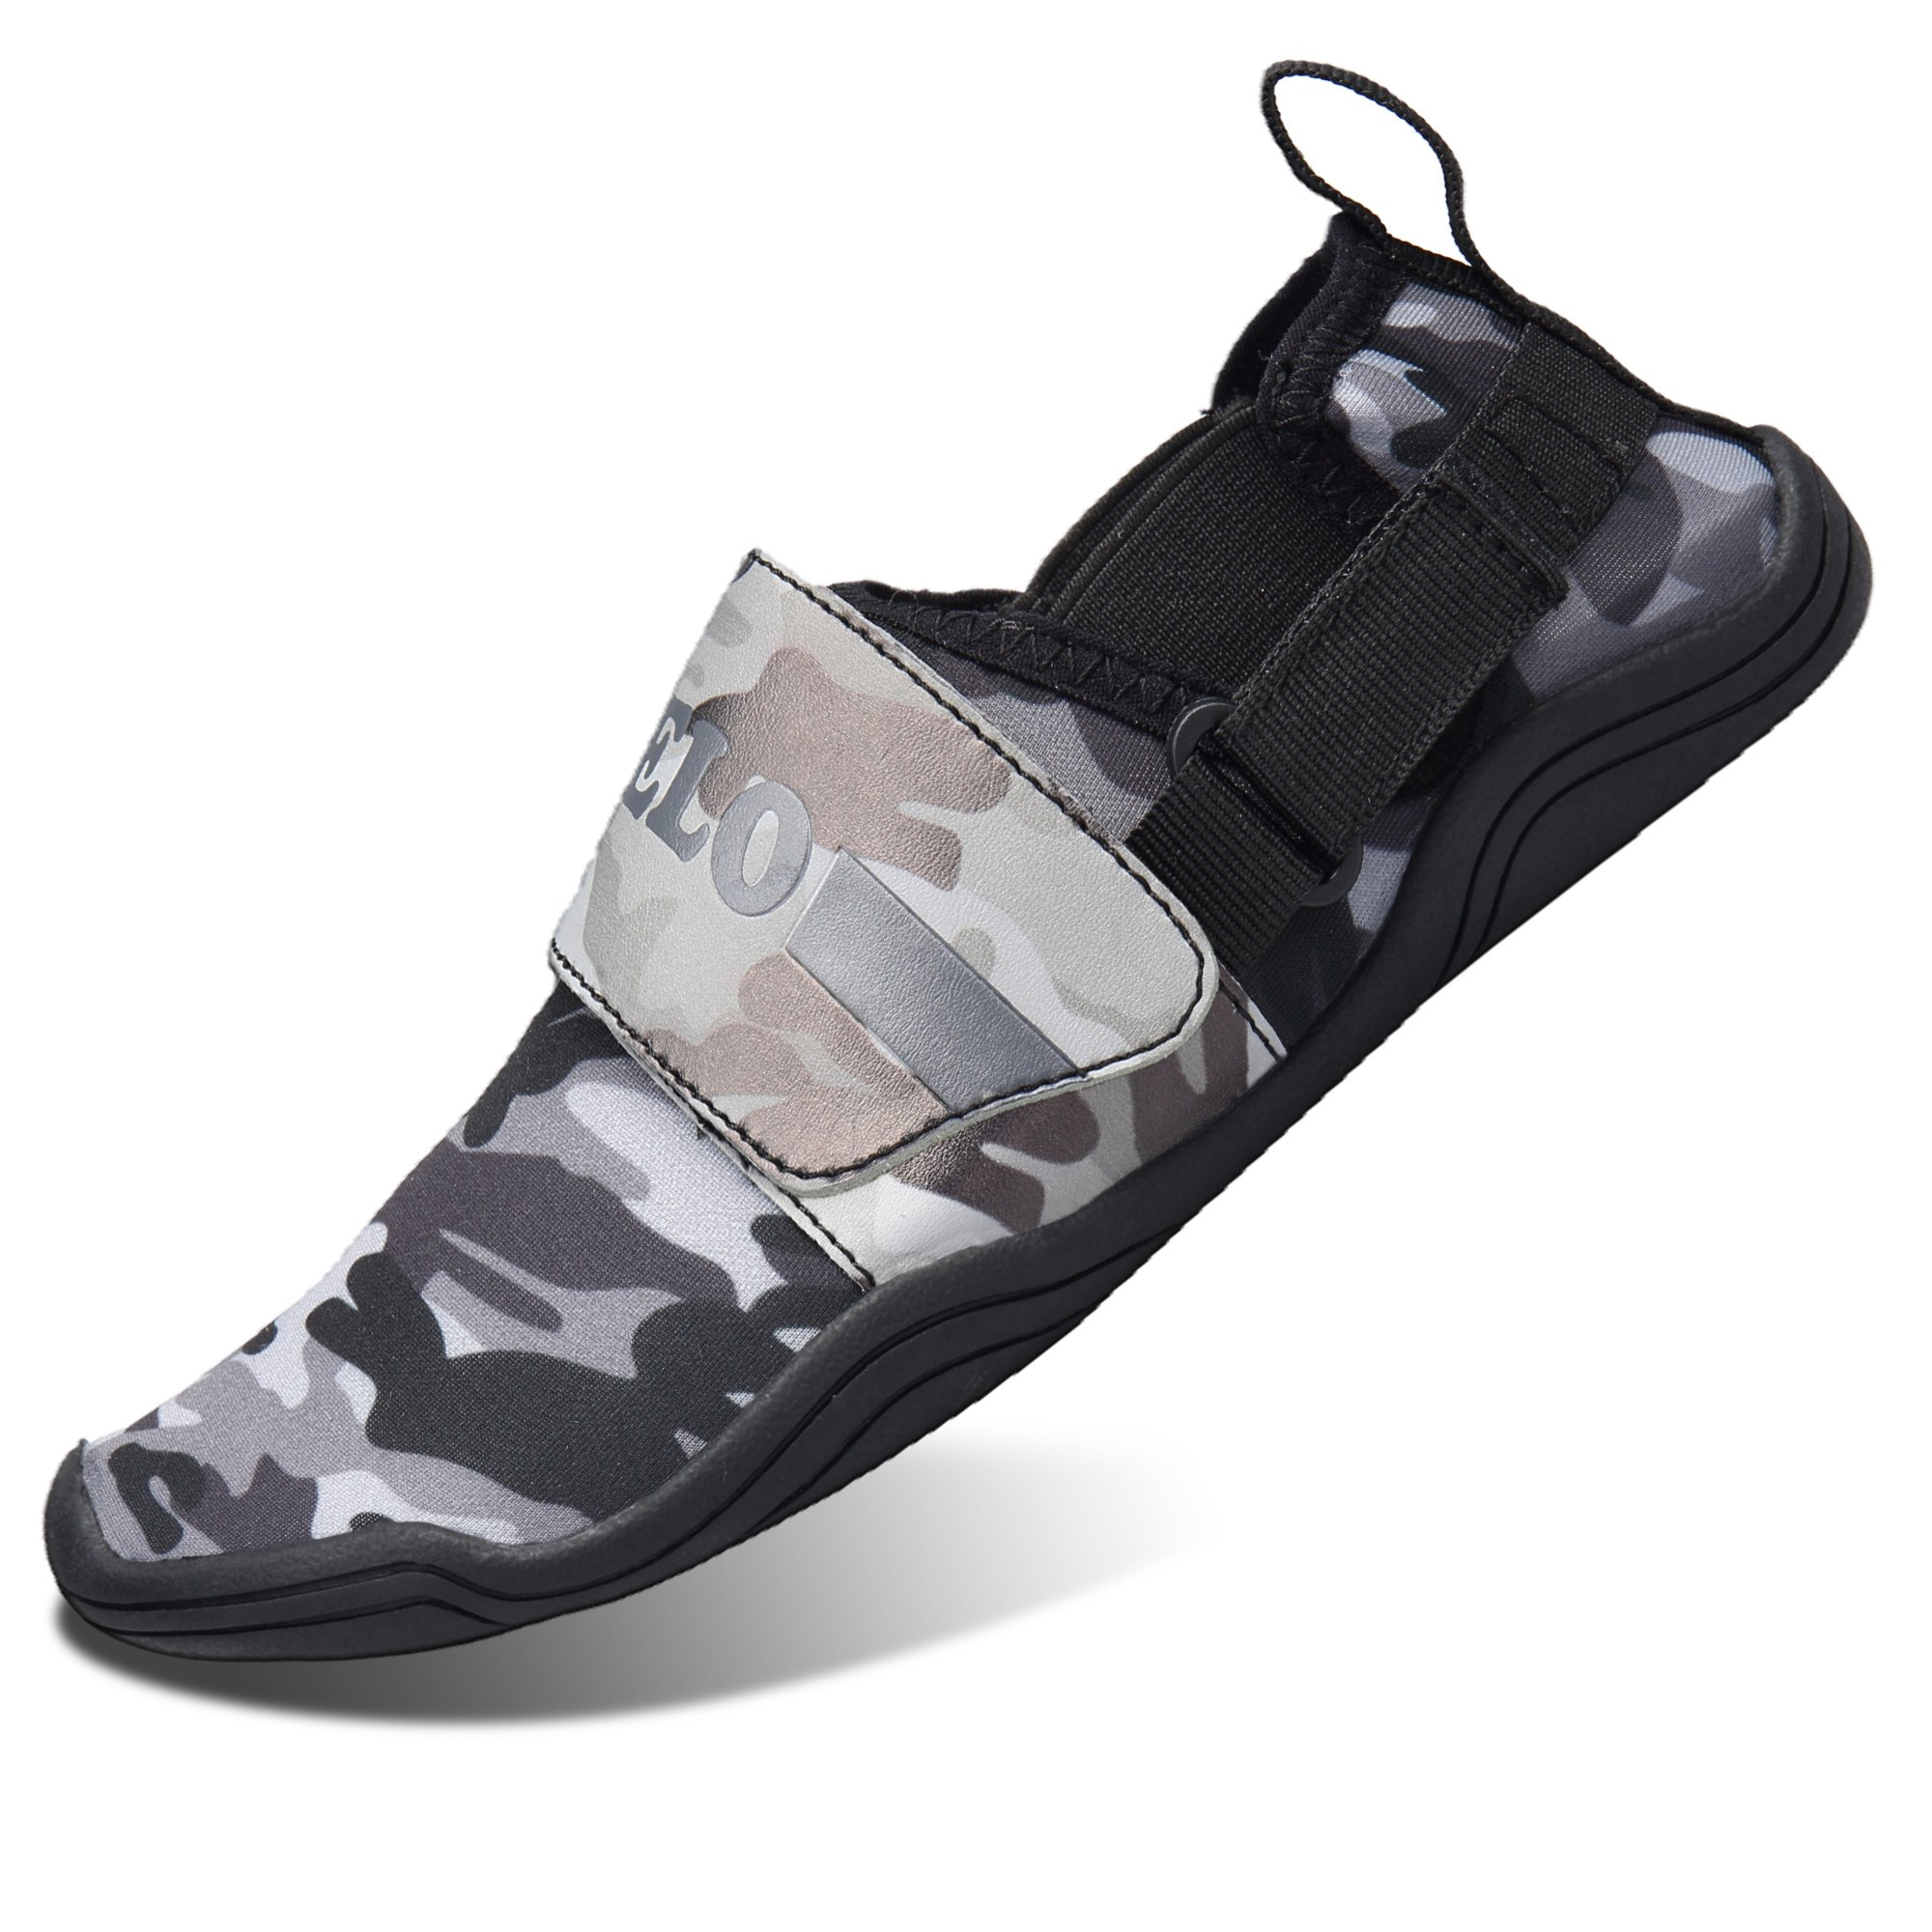 SIKELO Men and Women's Water Shoes Quick-Dry Barefoot Sports Lightweight by SIKELO (Image #1)